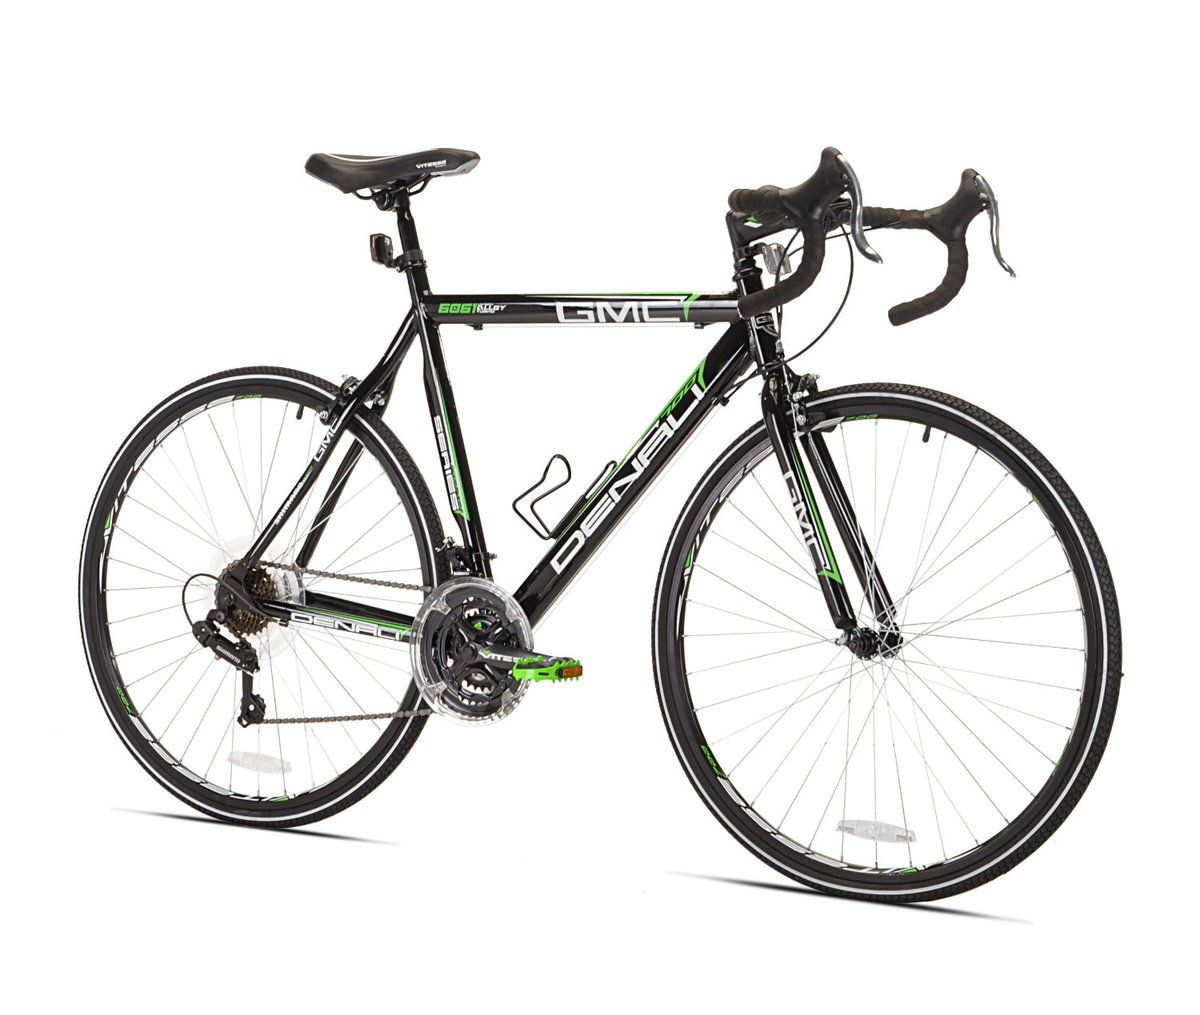 The 700c Gmc Denali Men S Road Bike Is Built Around A